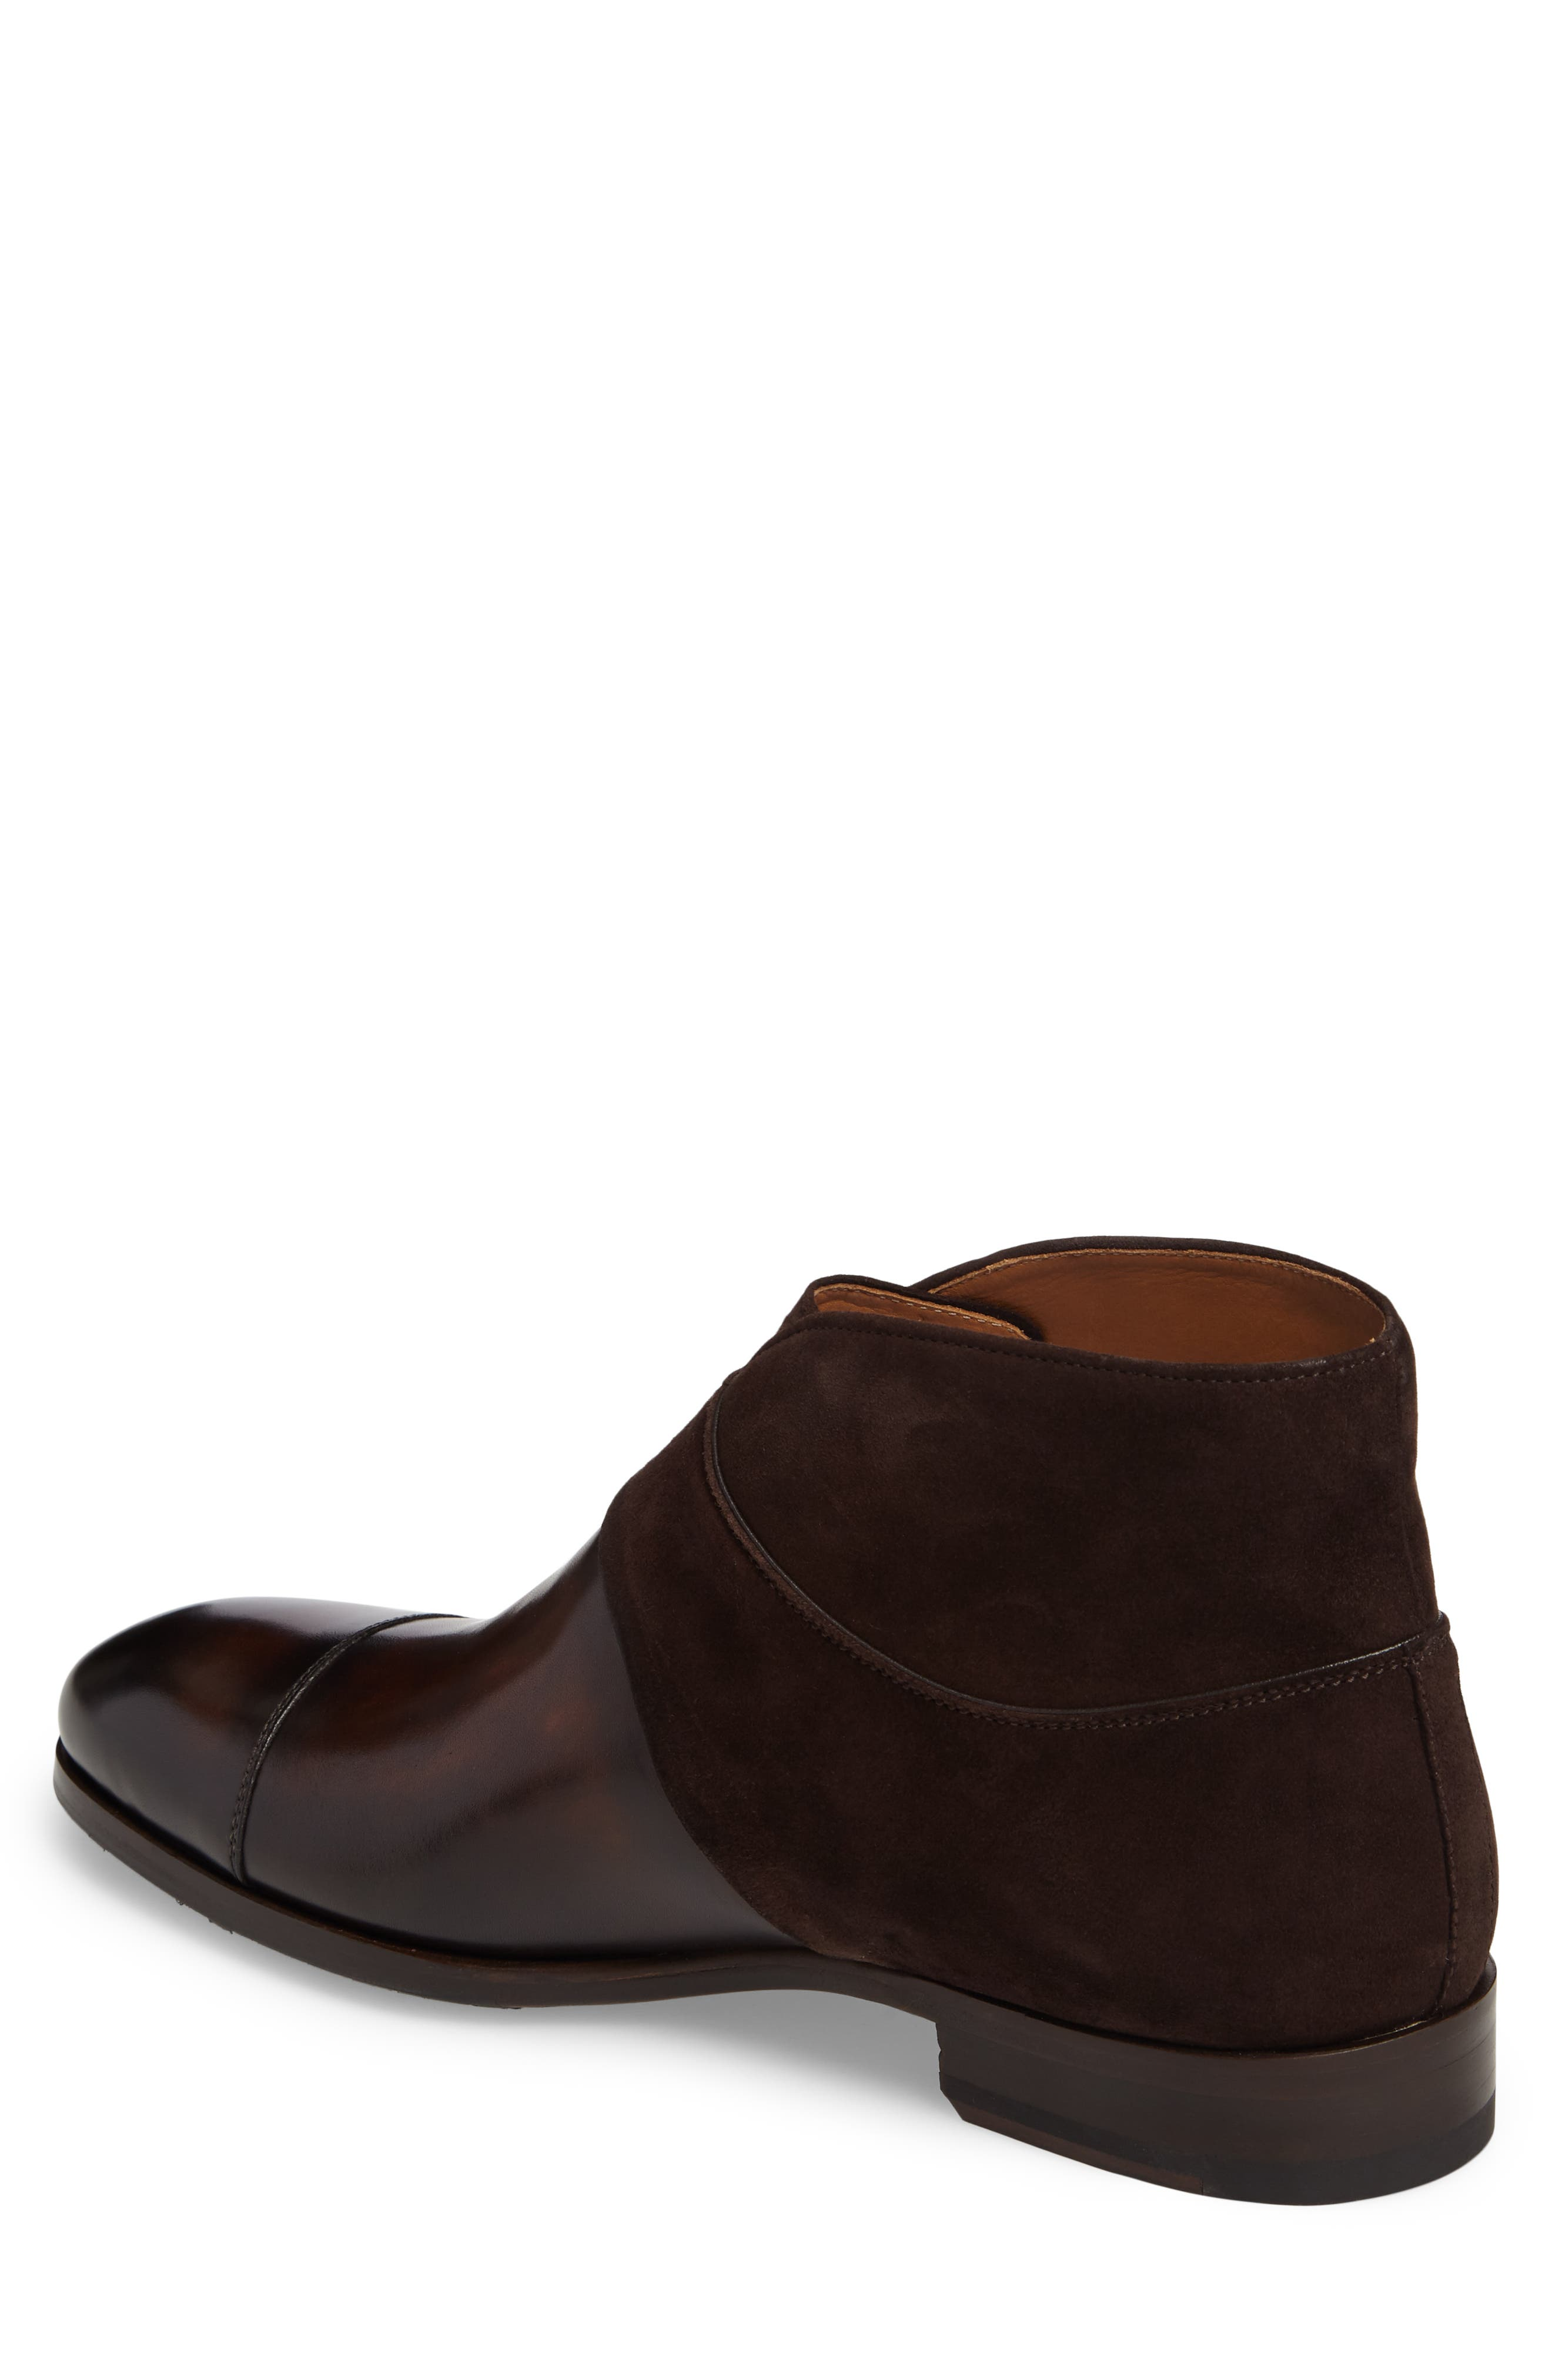 Alternate Image 2  - Magnanni Octavian Double Monk Strap Boot (Men)